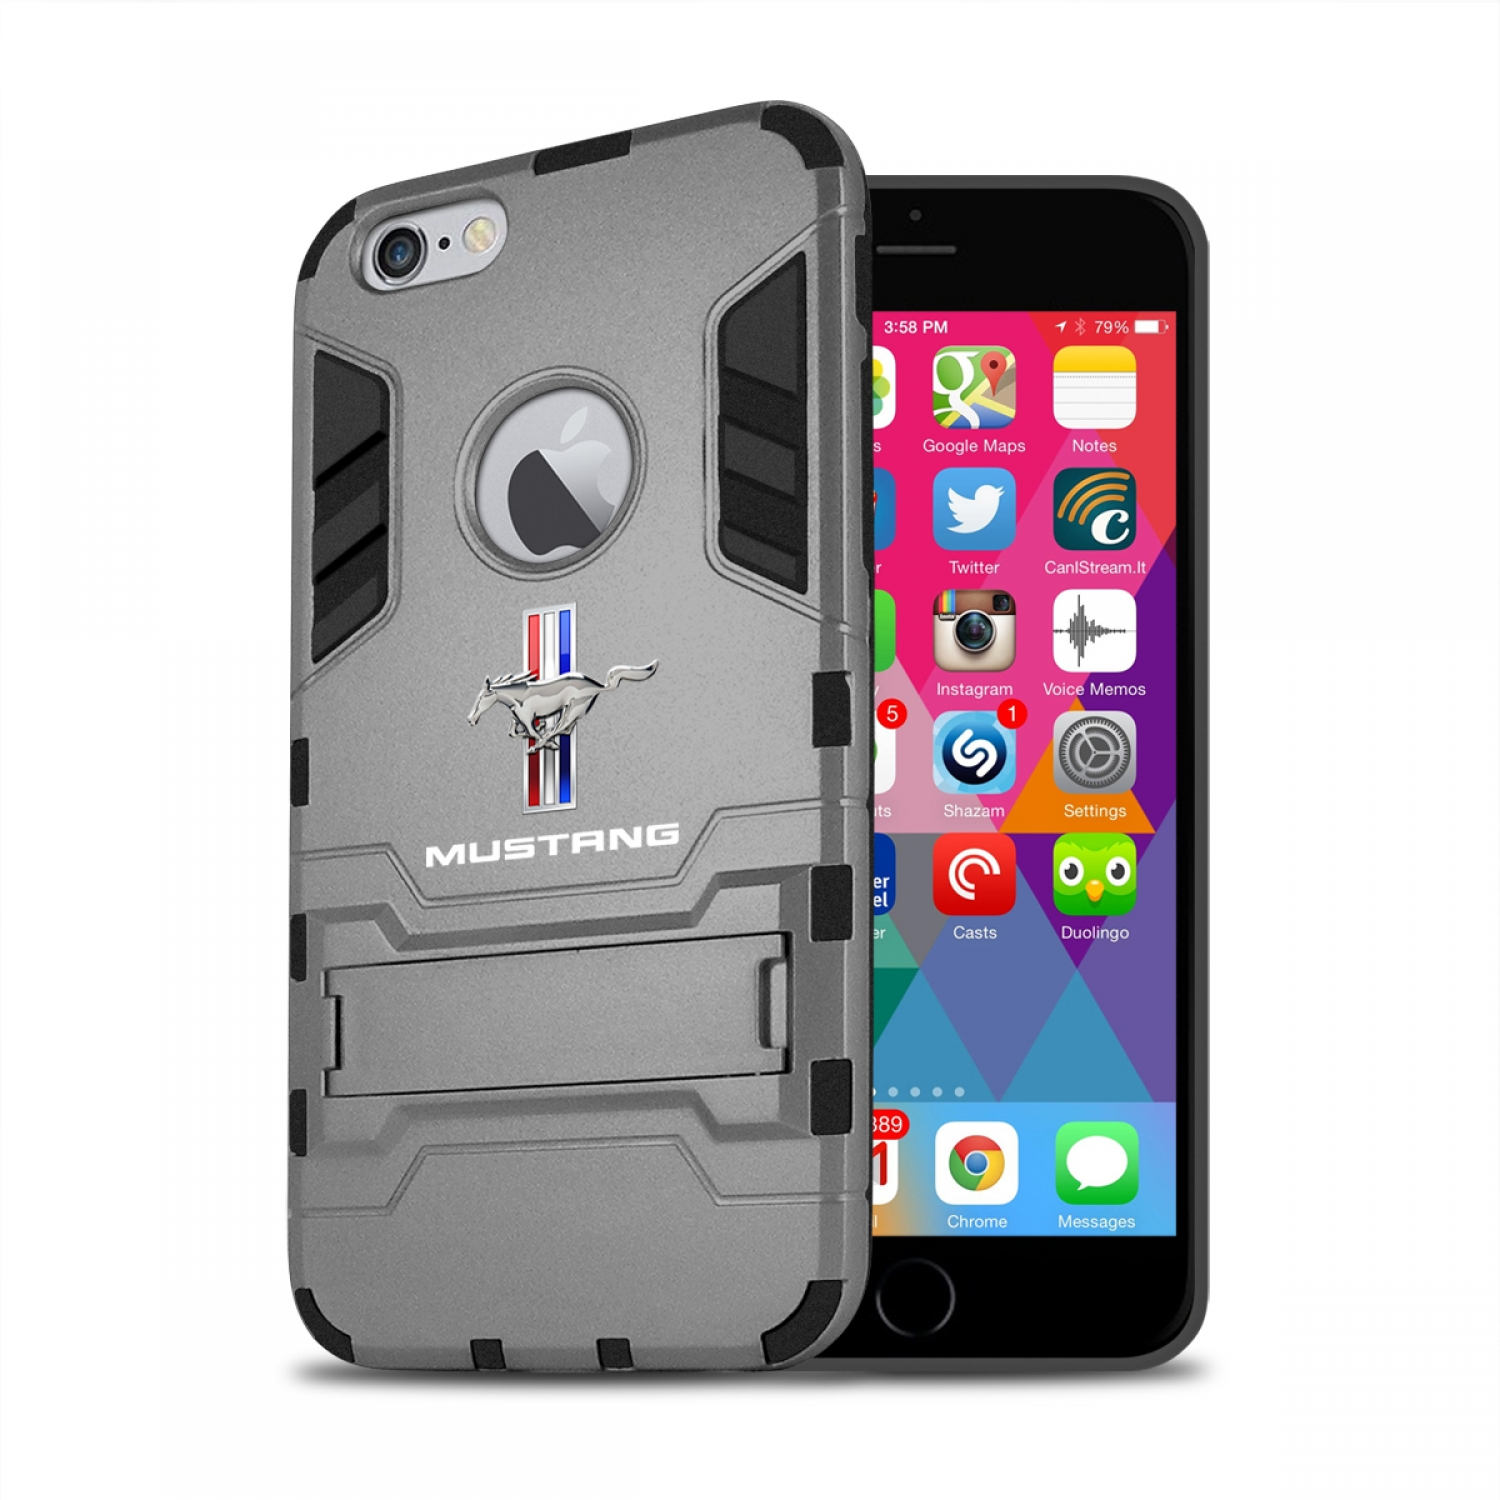 Ford Mustang Tri-Bar iPhone 6 6s Shockproof TPU ABS Hybrid Dark Gray Phone Case